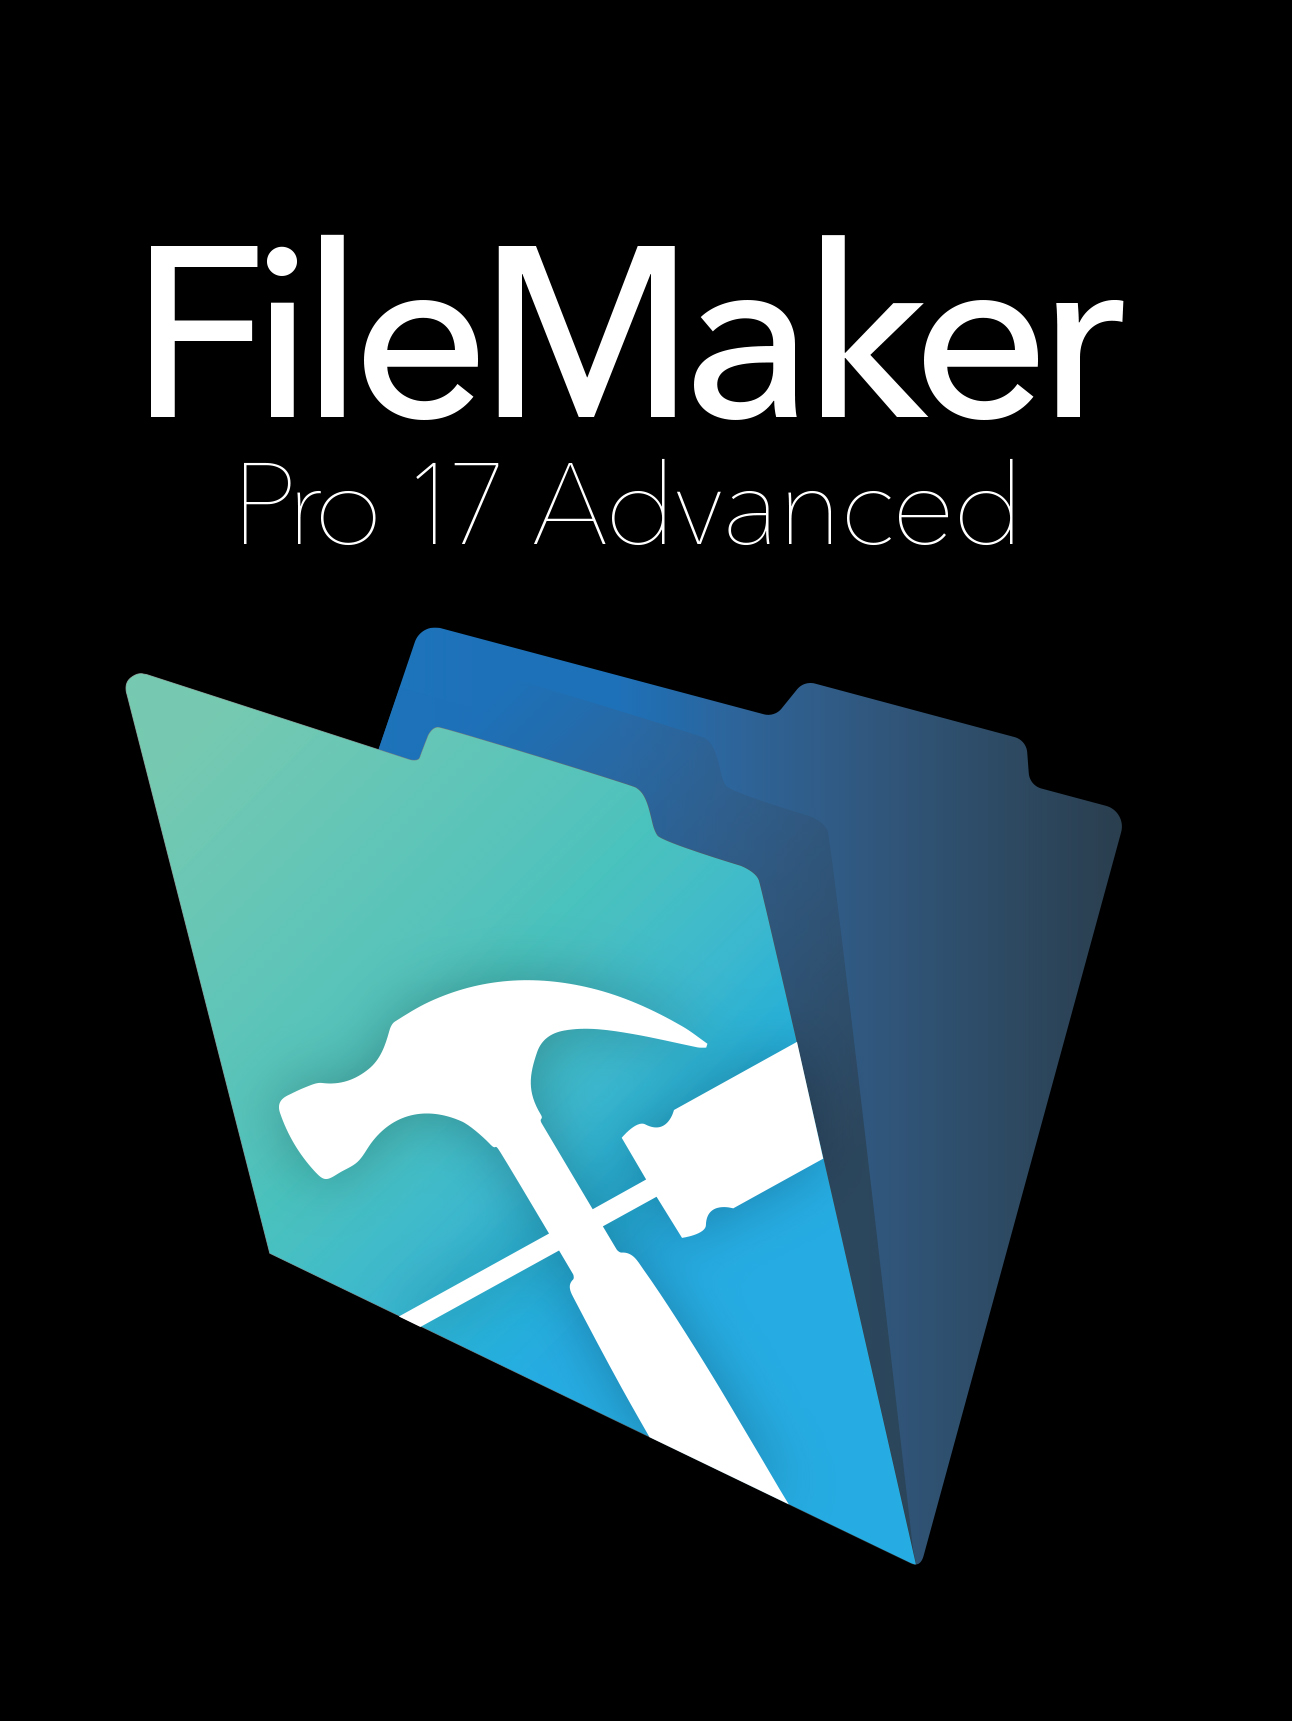 FileMaker Pro 17 Advanced Download Mac/Win [Online Code]